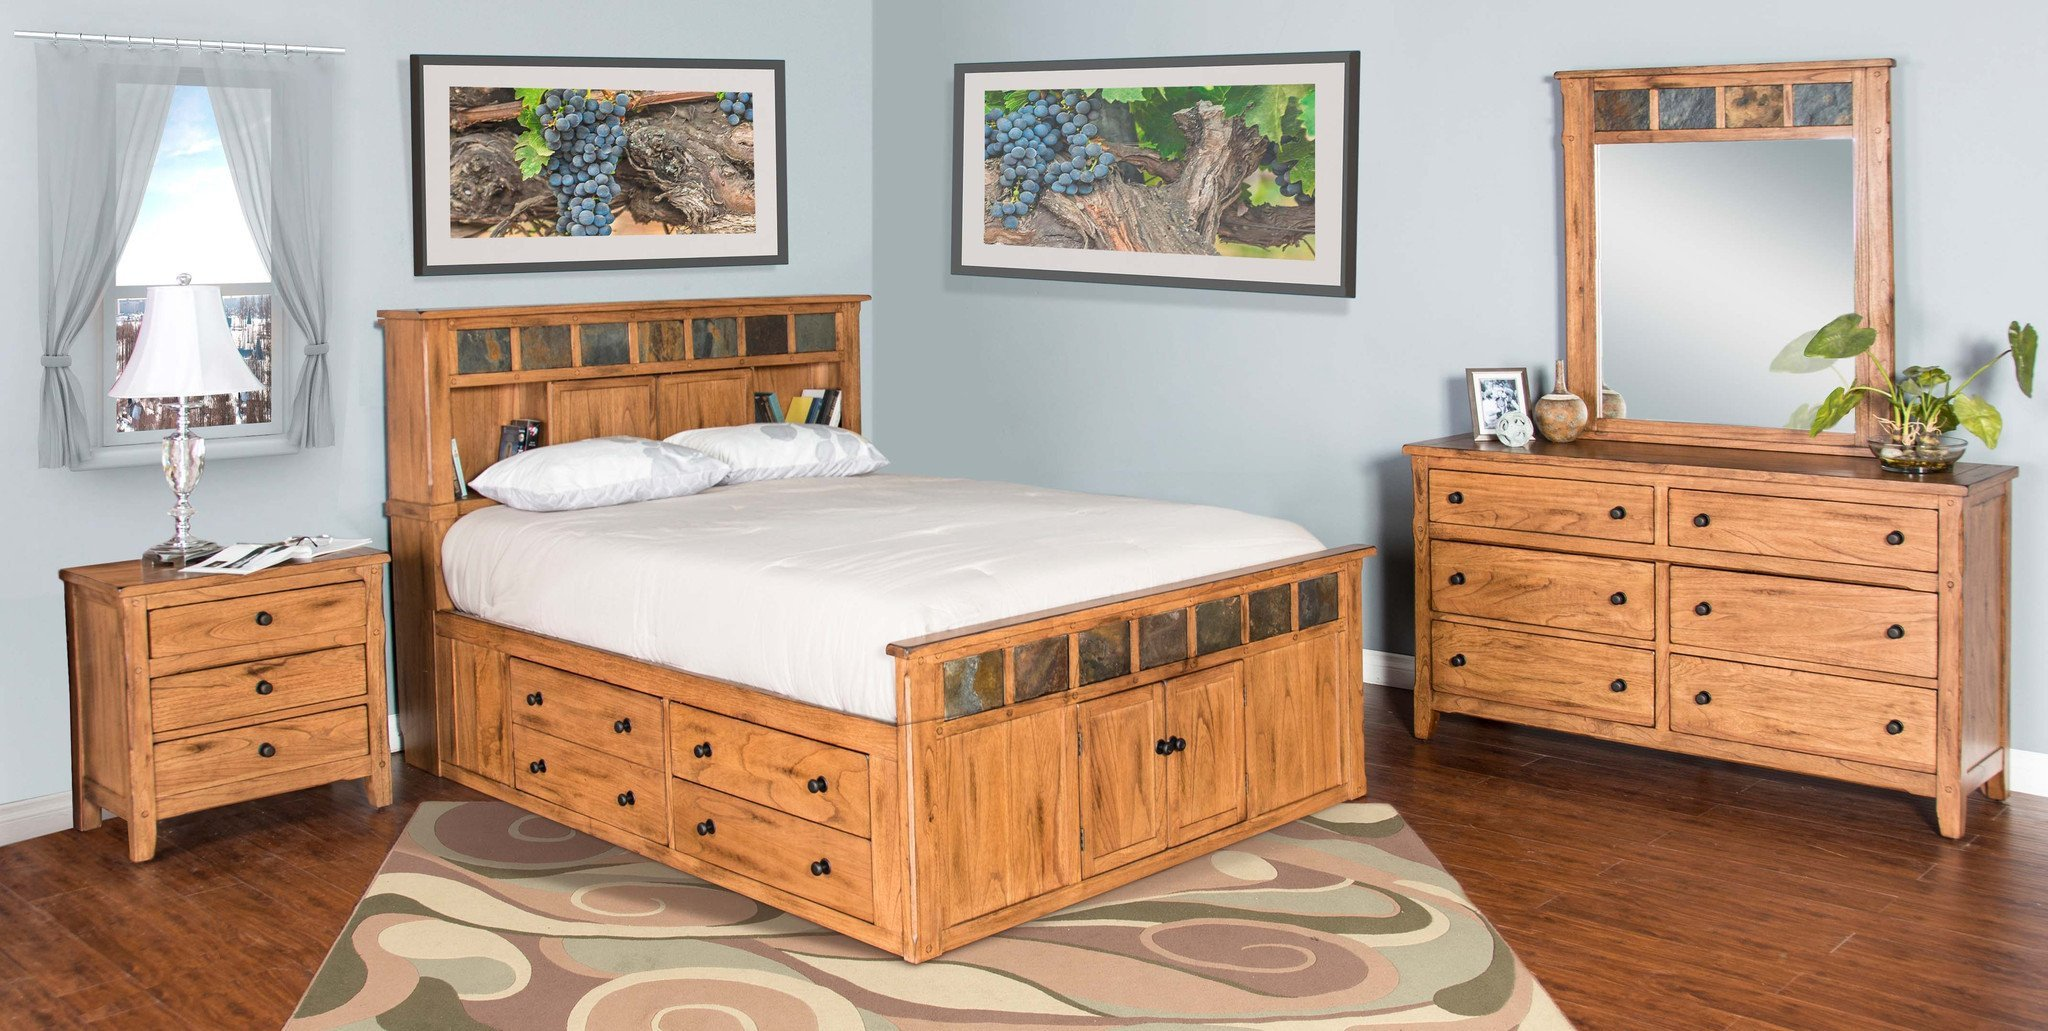 King Size Bedroom Set Cheap Lovely Sedona Rustic Petite Storage Bedroom Suite E King Size